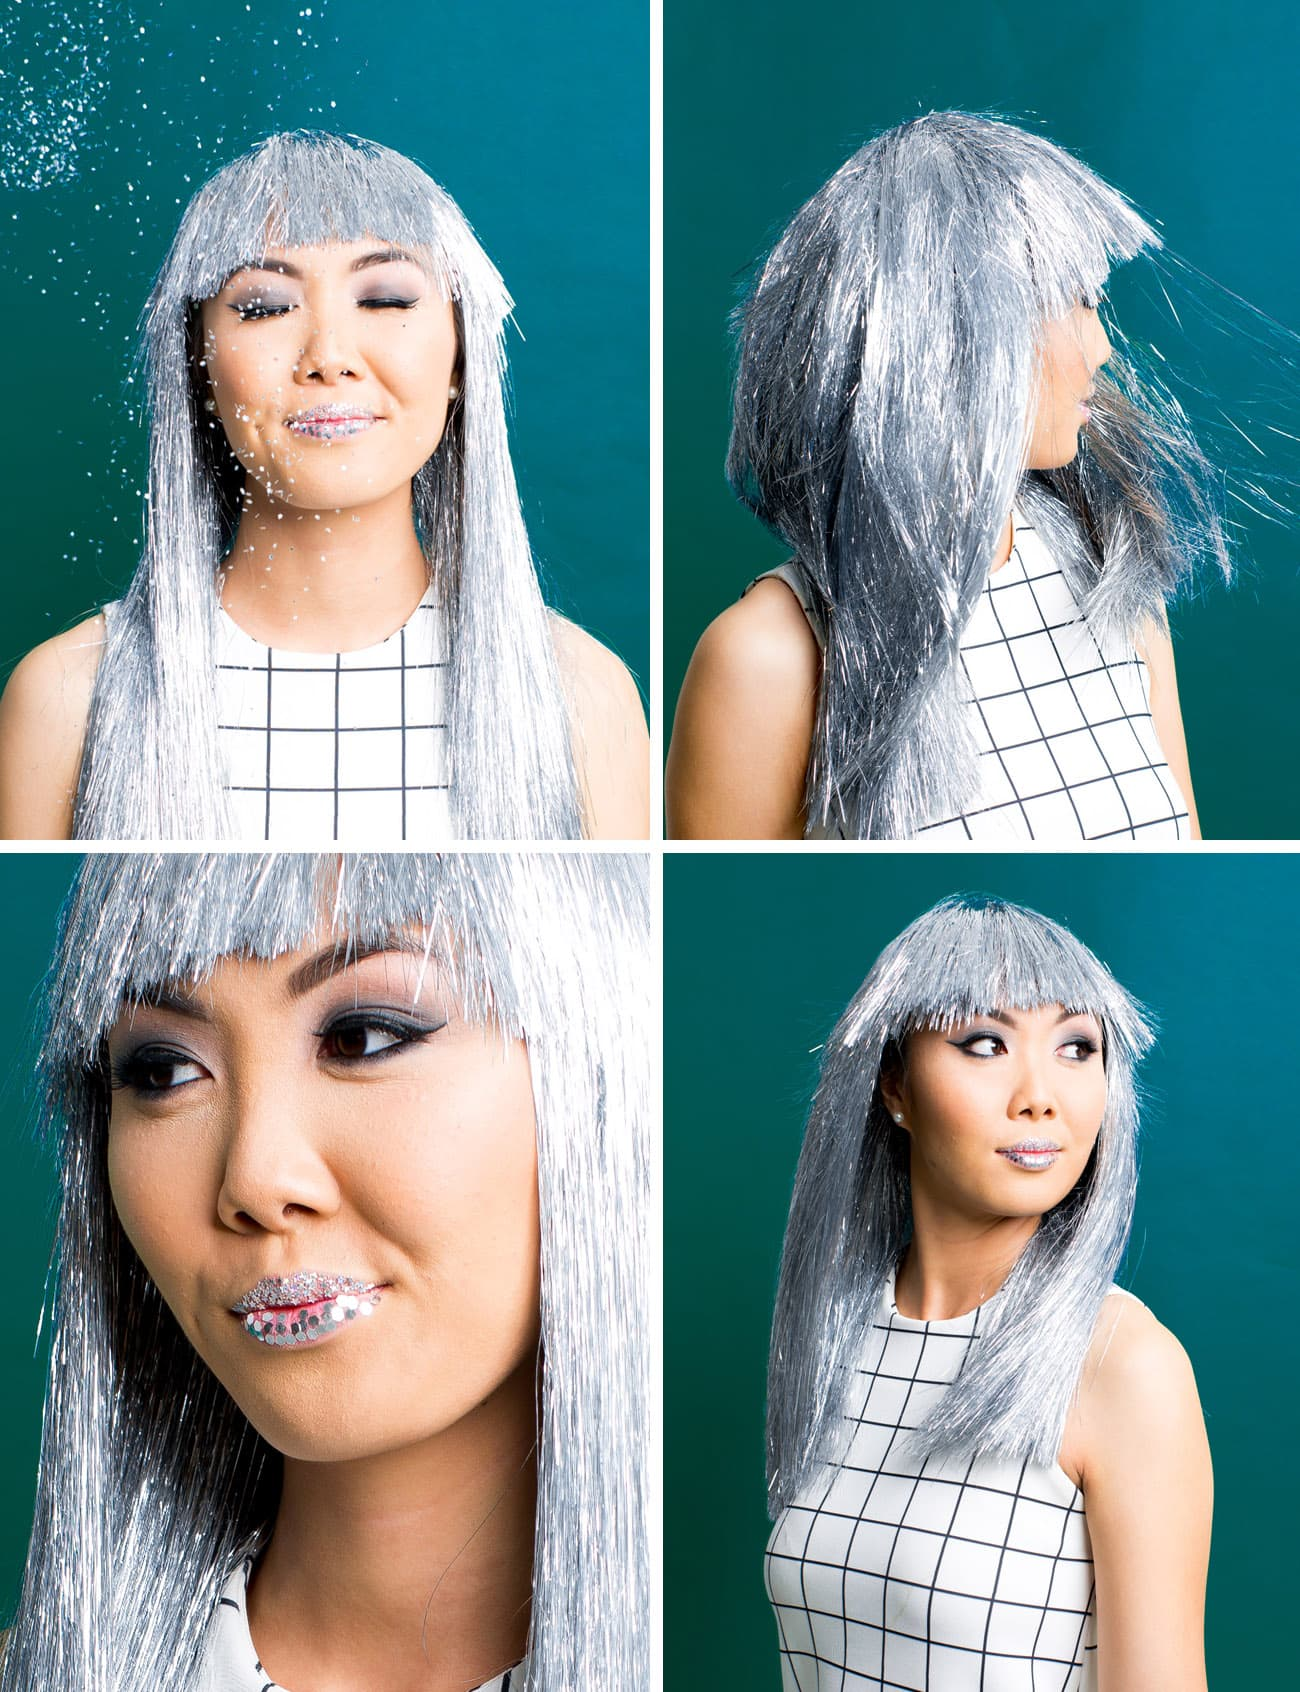 Winks & Wigs: DIY Wig and Lash Combinations for Halloween by Sugar & Cloth- Metallic Wig- Glitter Lips - ideas - ashley rose - best DIY blog - houston blogger #diy #blogger #costume #halloween #diycostume #halloweencostume #wig #falsies #lastminute #spacegirl